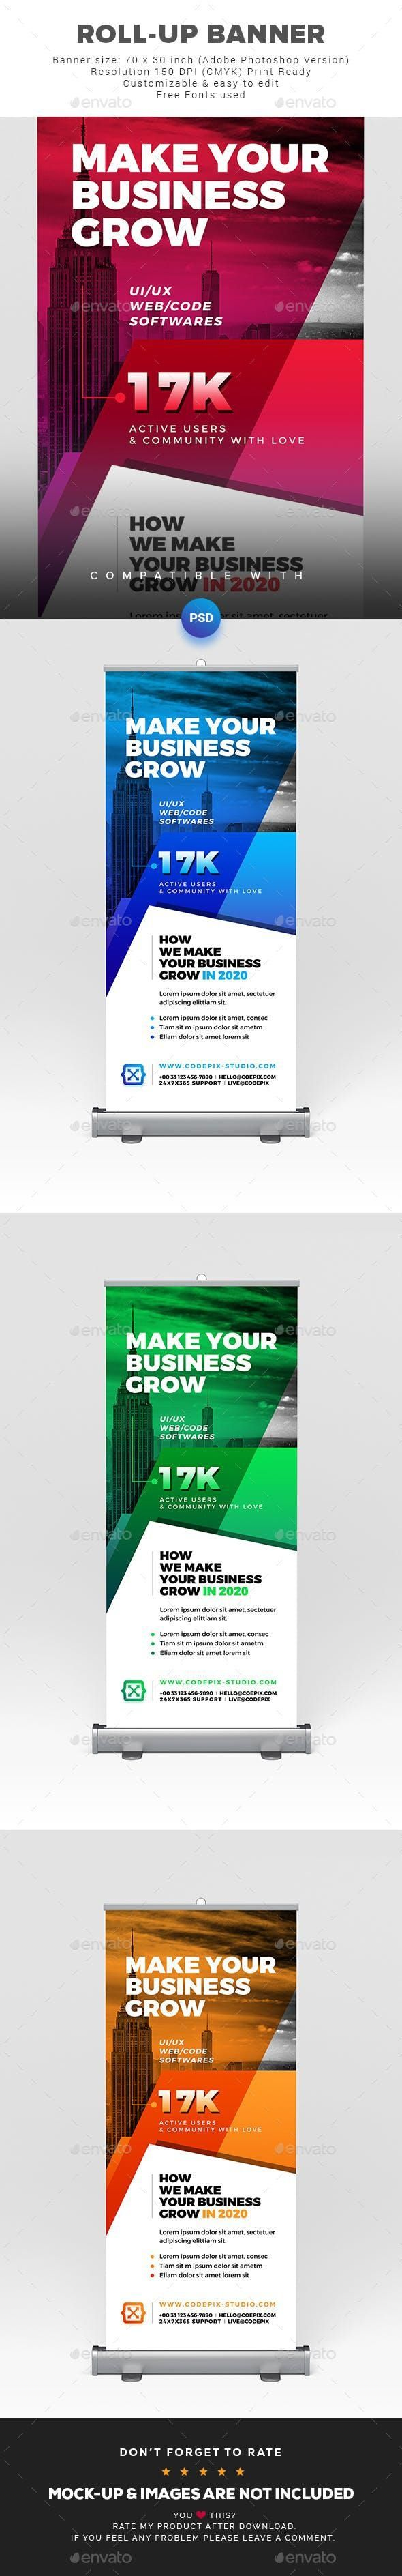 Roll-Up Banner #GraphicDesign #GraphicRiver #template #SignageDesign #marketing